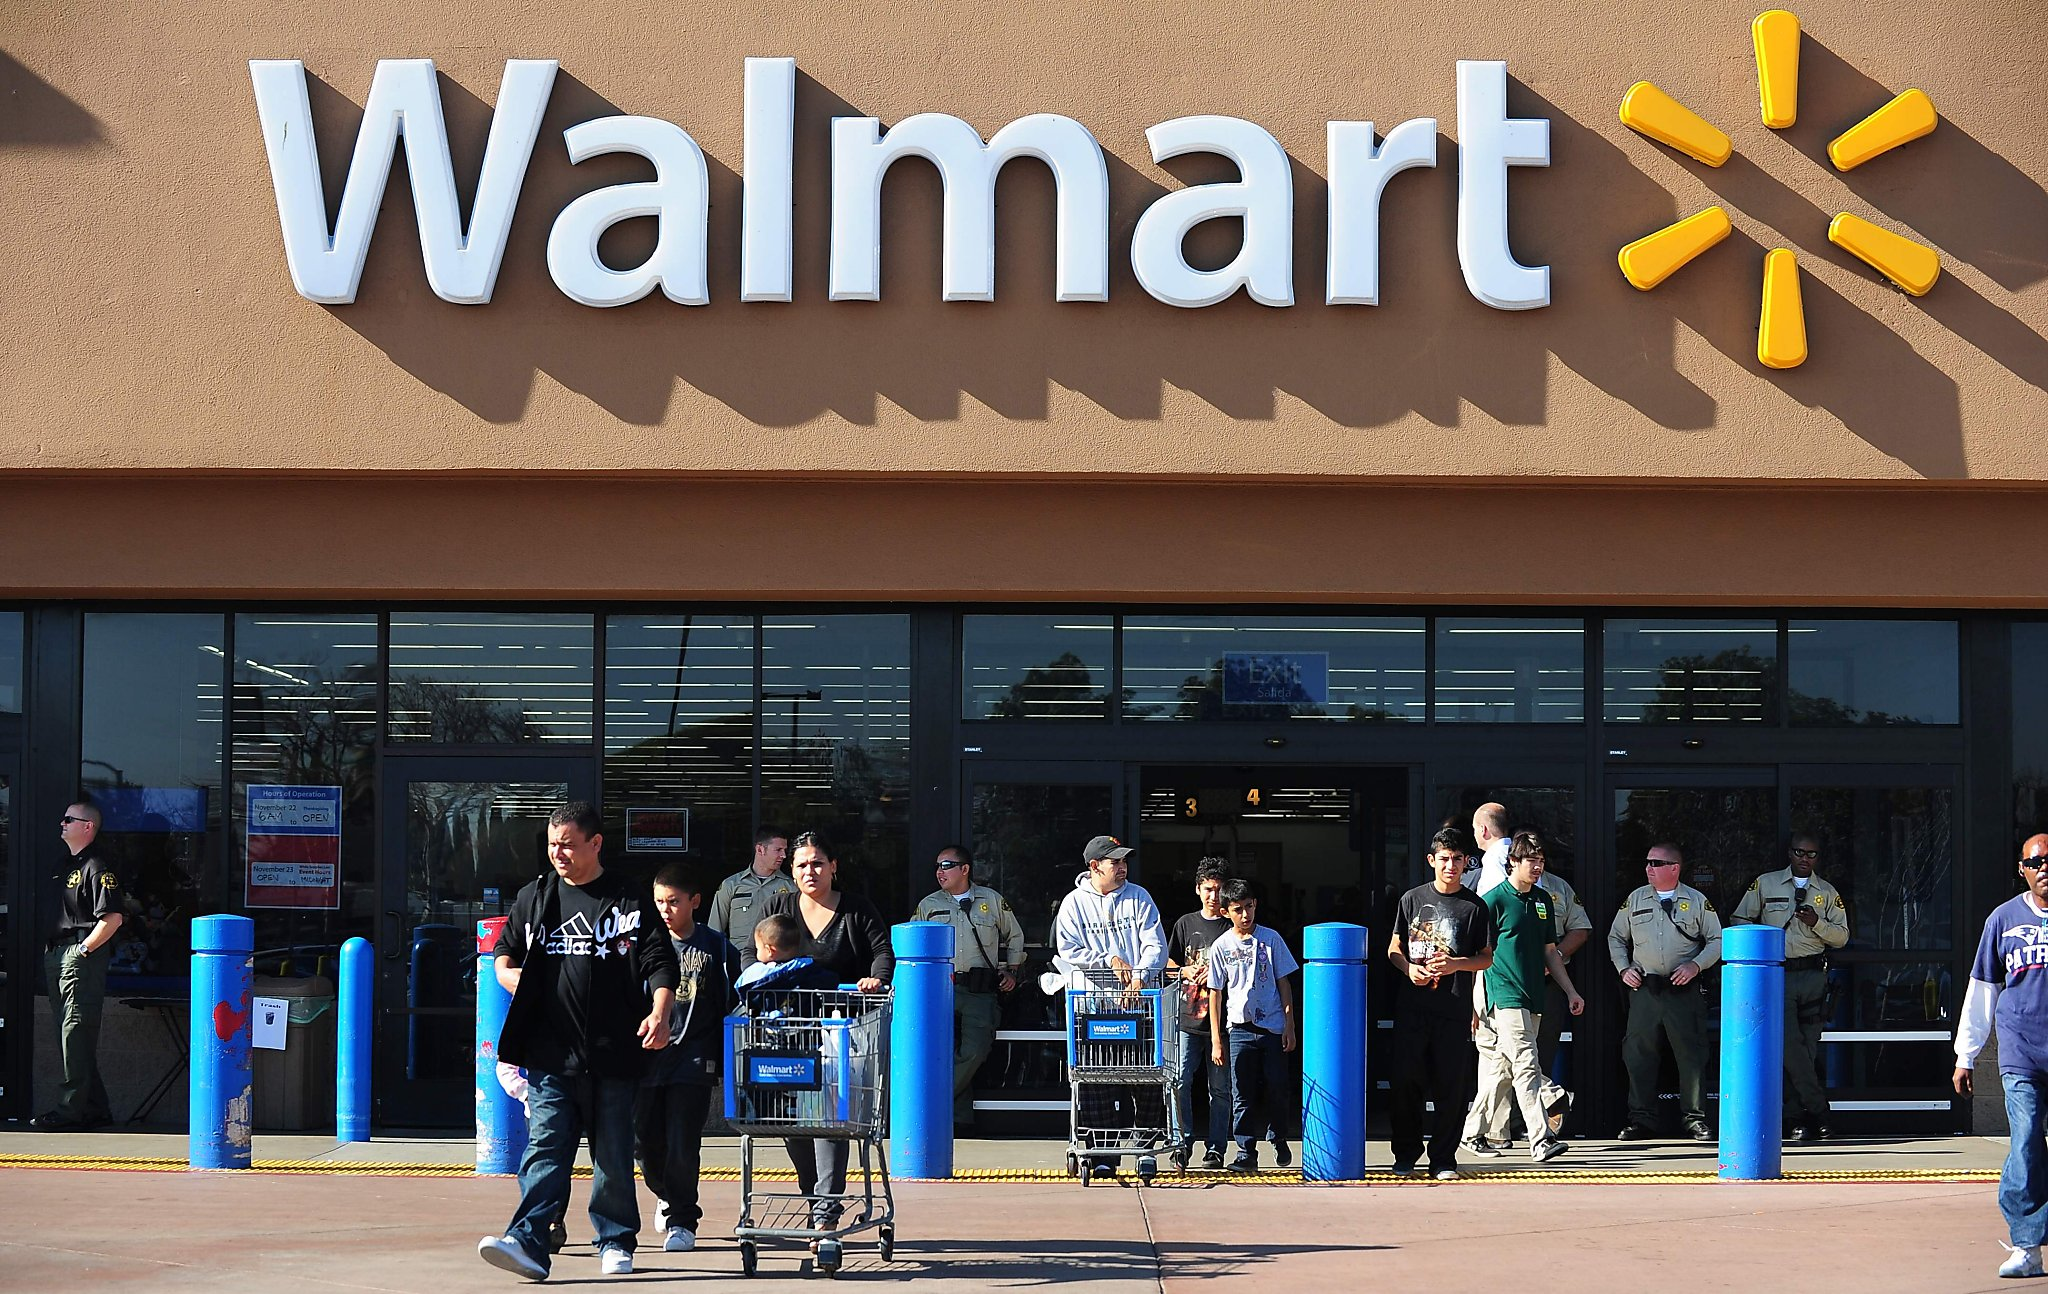 overnight jobs at walmart cover letter cincy area clinic to stop rawimage overnight jobs at walmarthtml